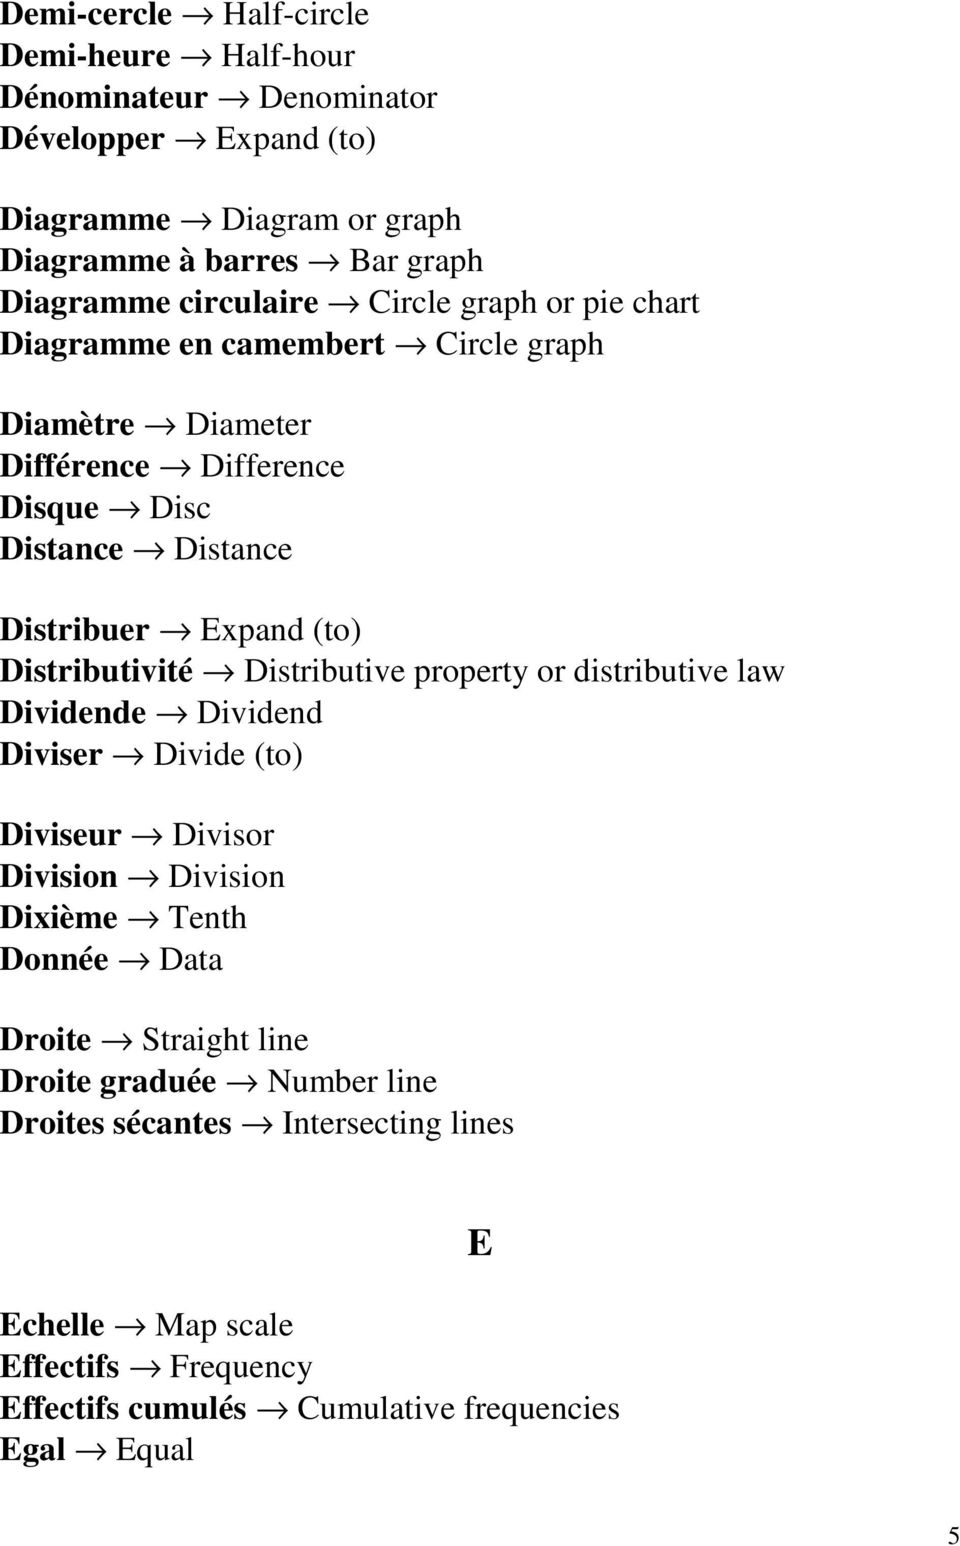 (to) Distributivité Distributive property or distributive law Dividende Dividend Diviser Divide (to) Diviseur Divisor Division Division Dixième Tenth Donnée Data